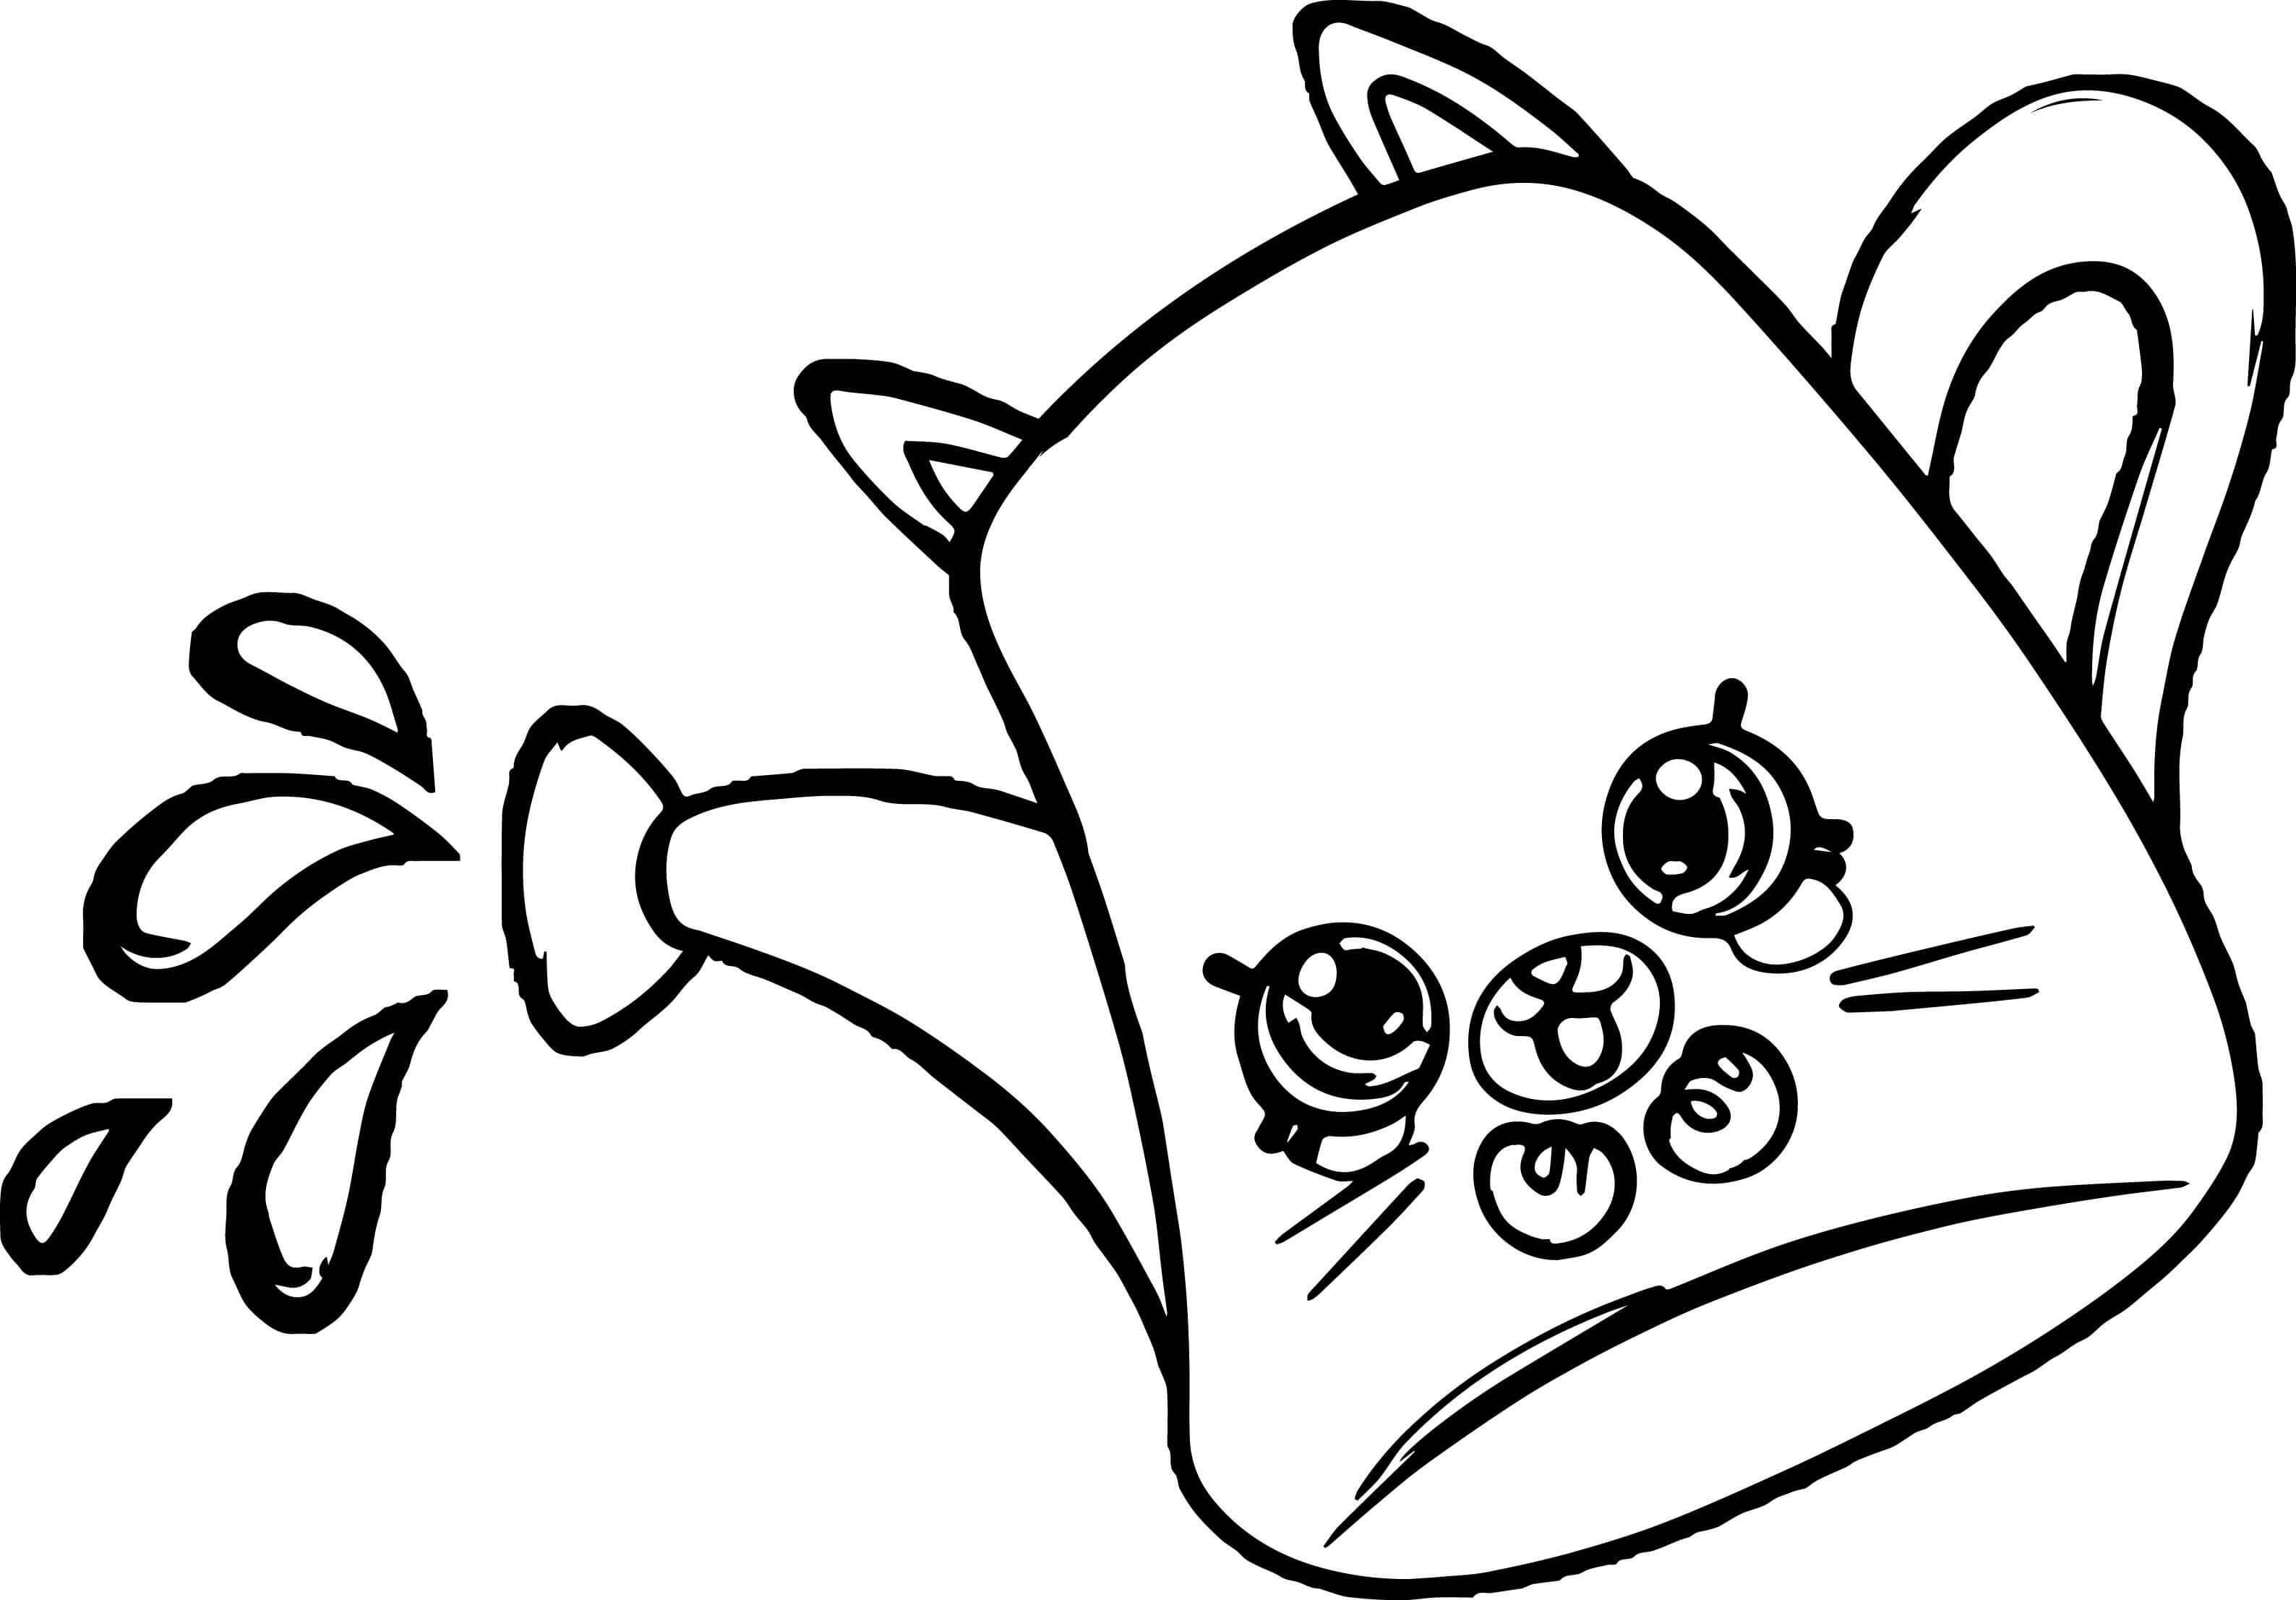 3176x2213 Drips Shopkins Coloring Page Coloring Pages For Kids